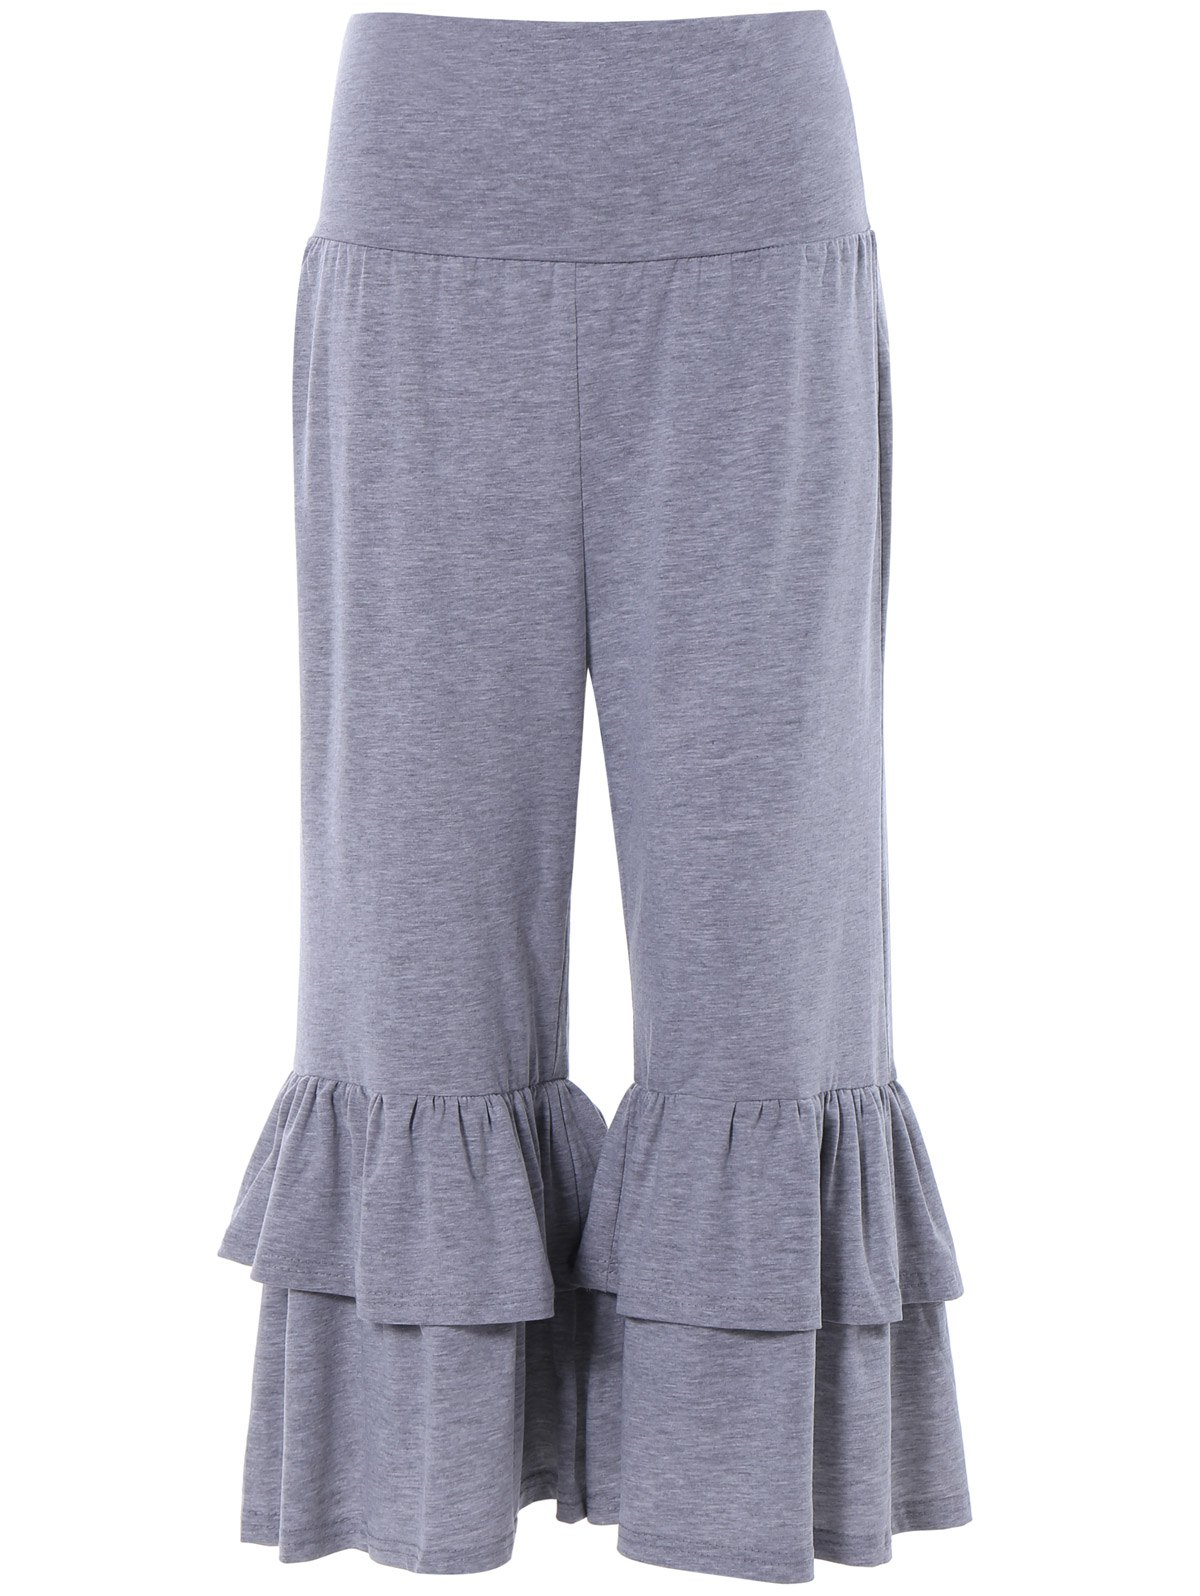 Tiered Ruffled Capris - GRAY XL